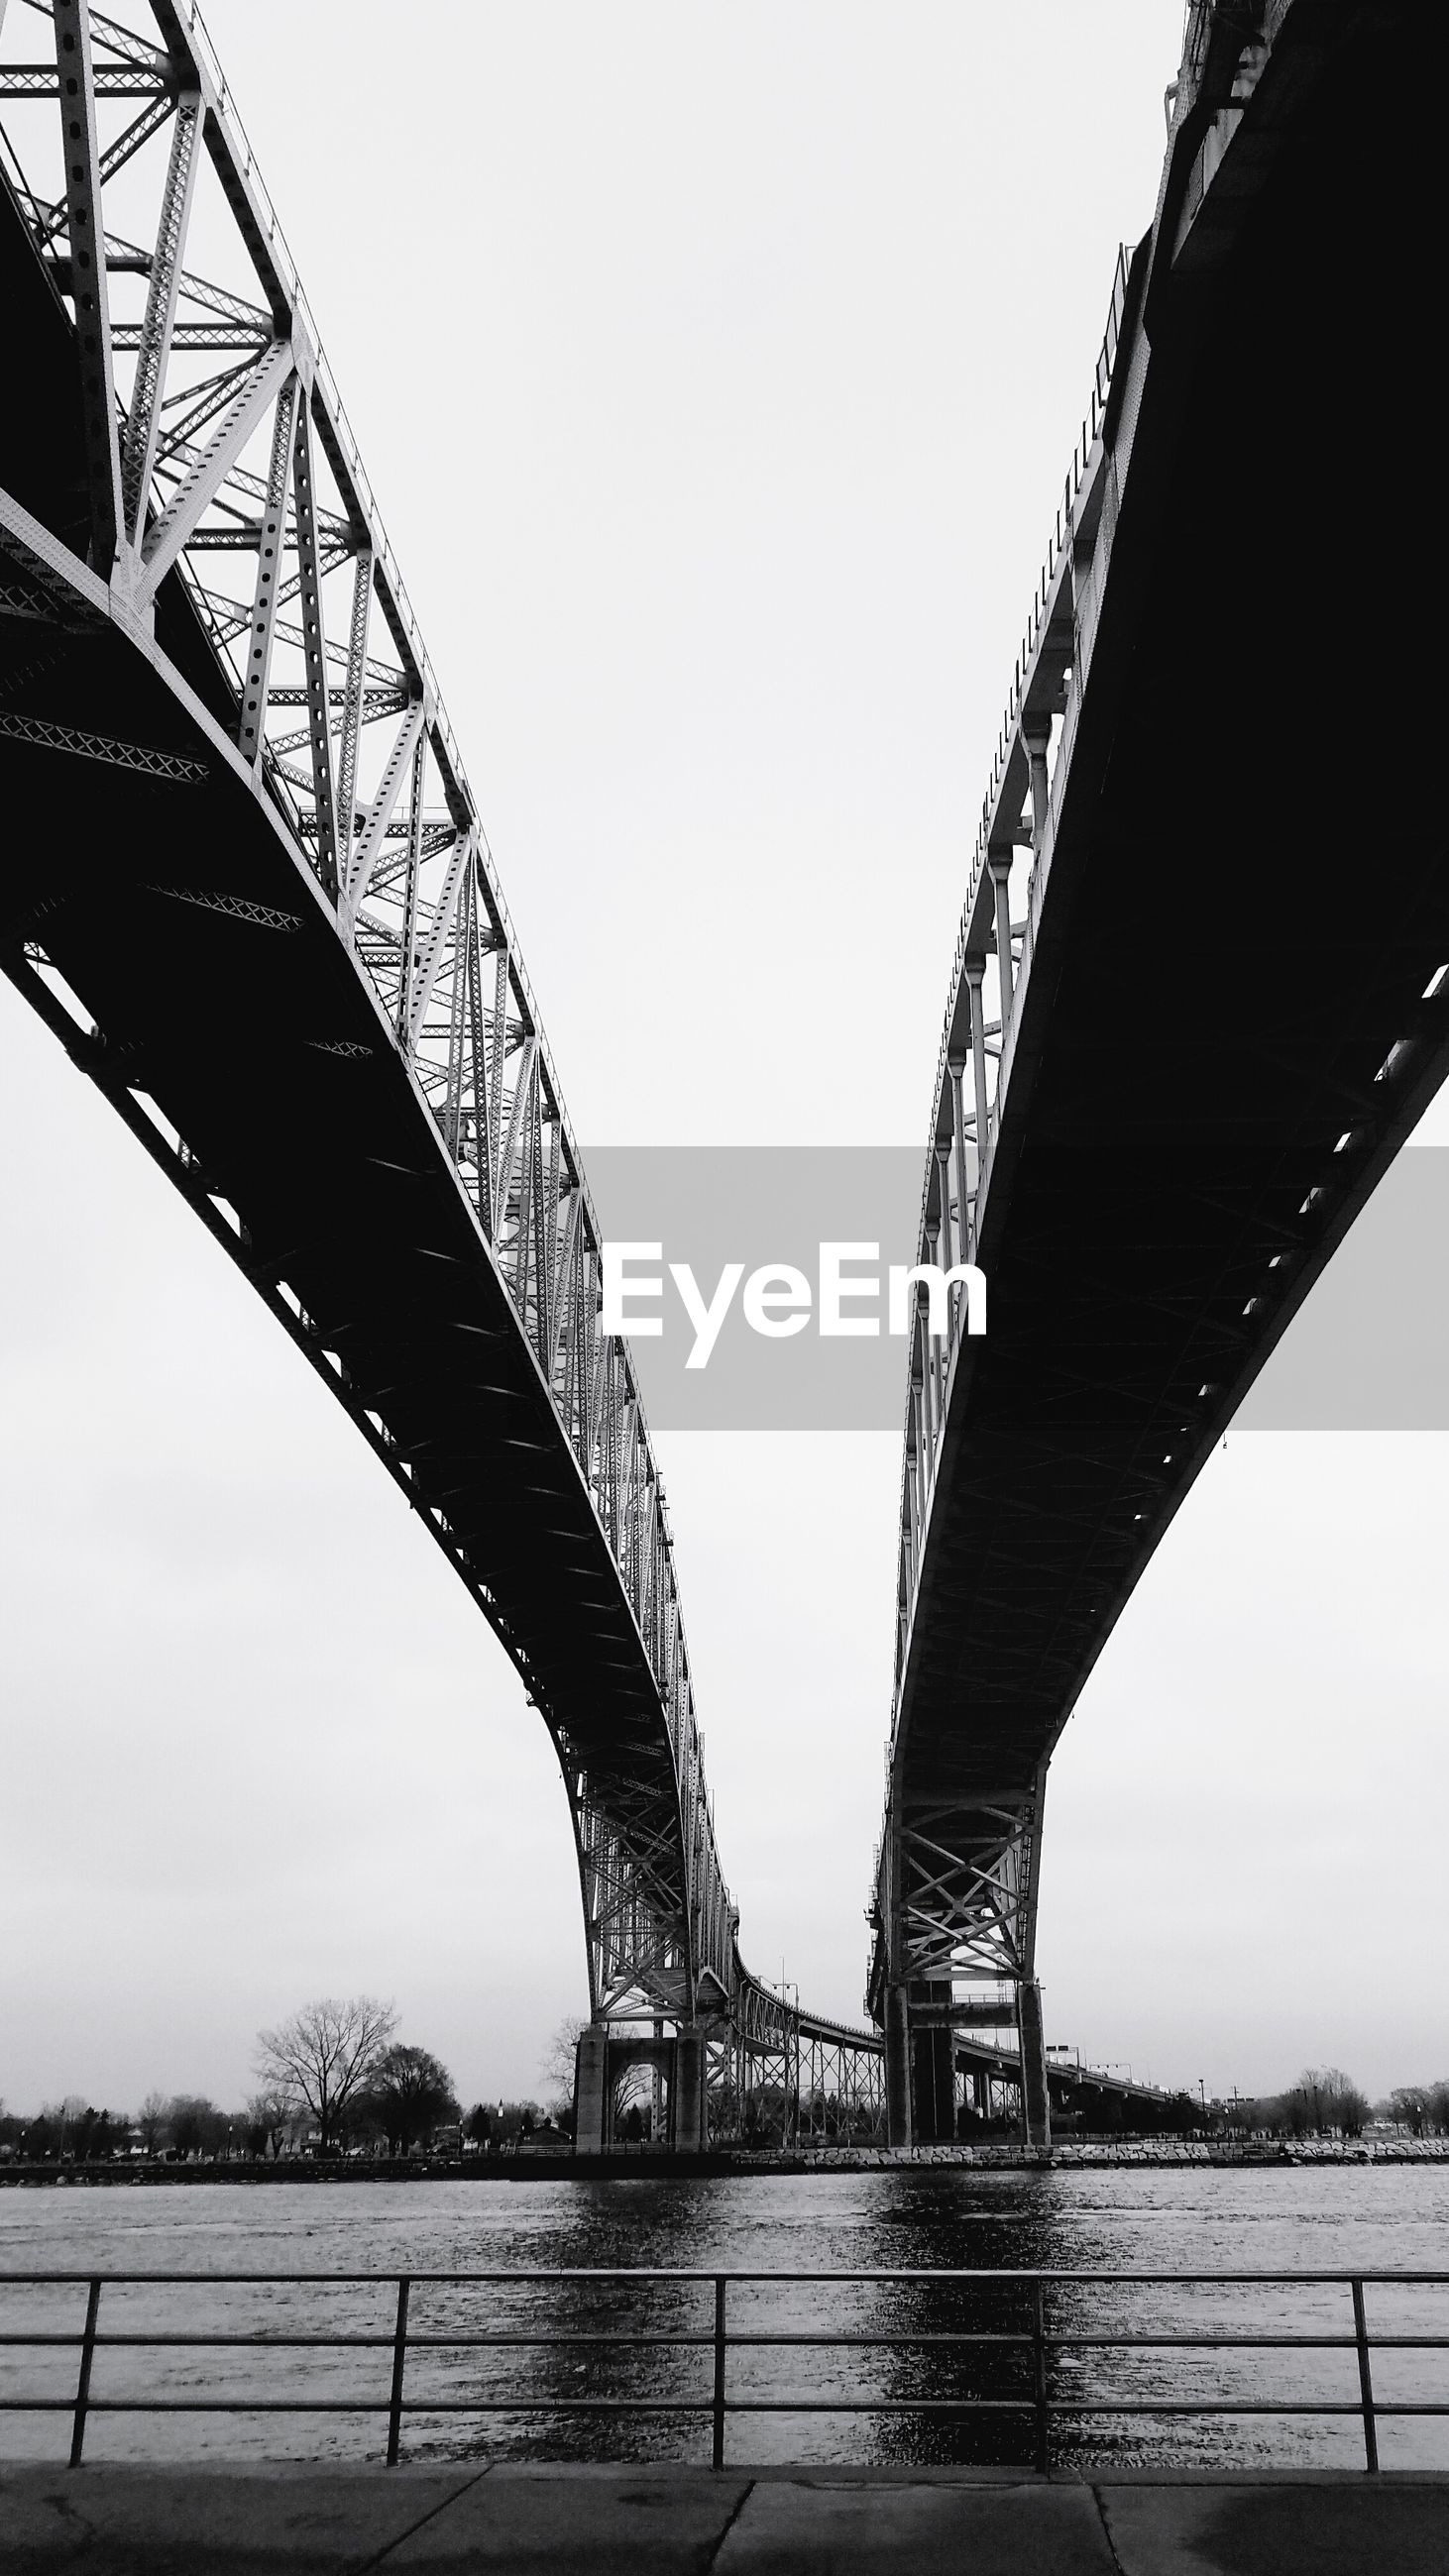 LOW ANGLE VIEW OF GOLDEN BRIDGE AGAINST SKY